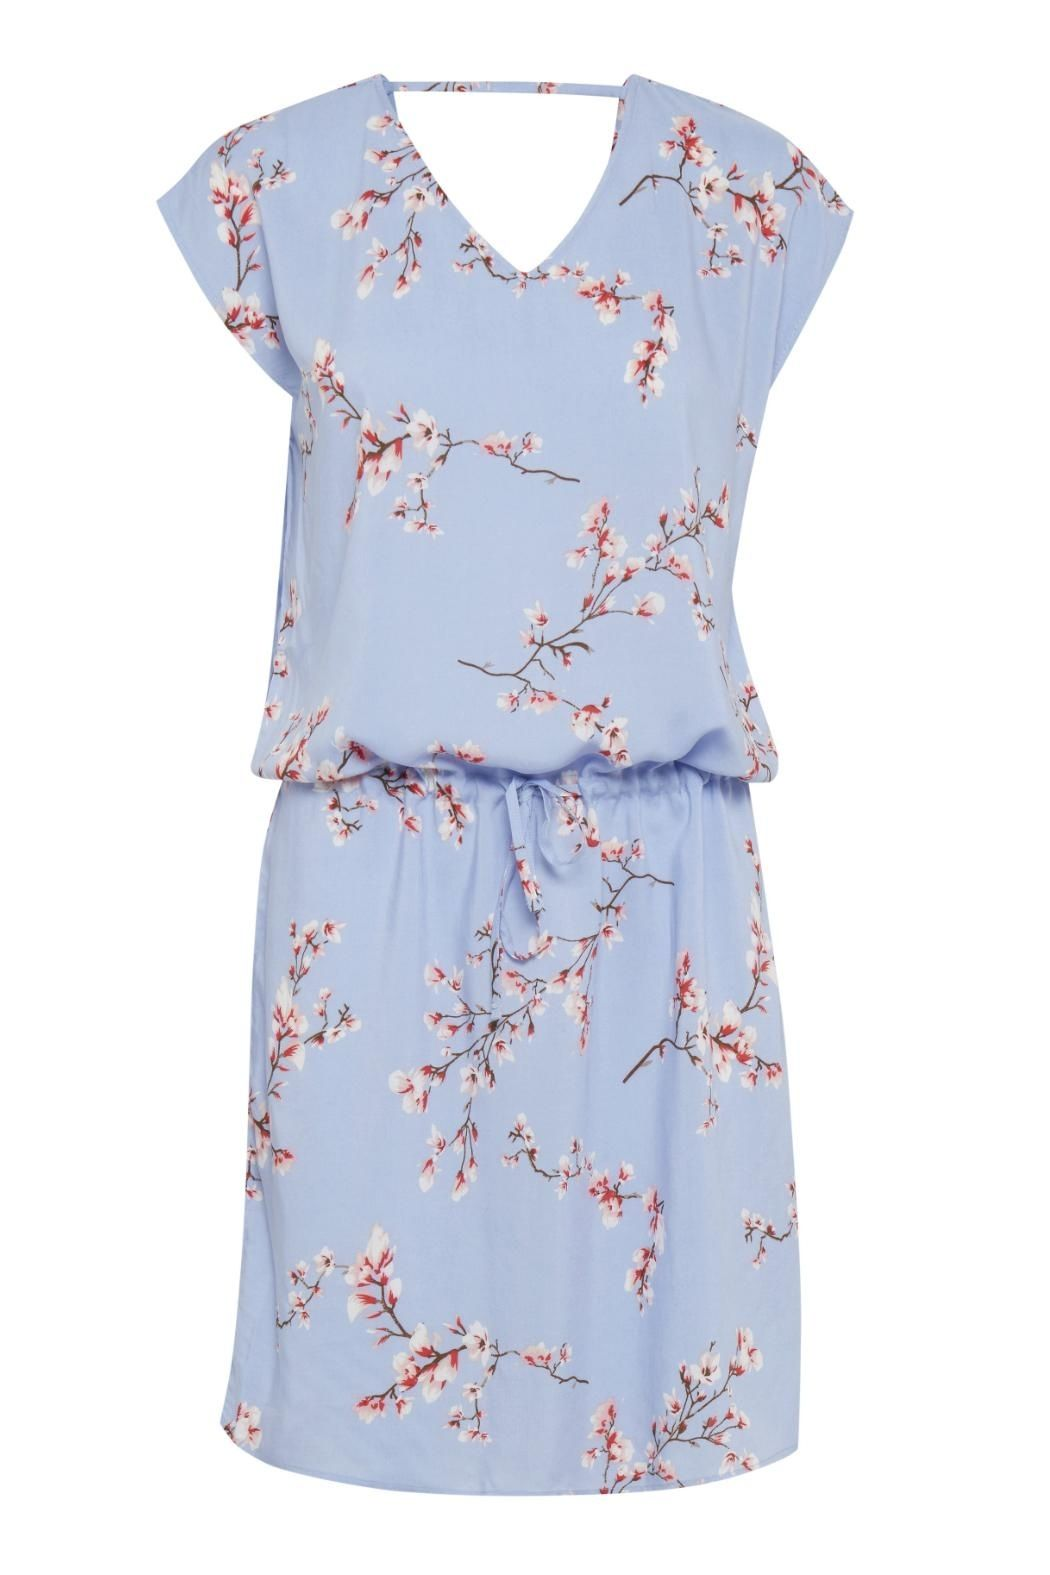 Byoung bluebell floral dress with images spring